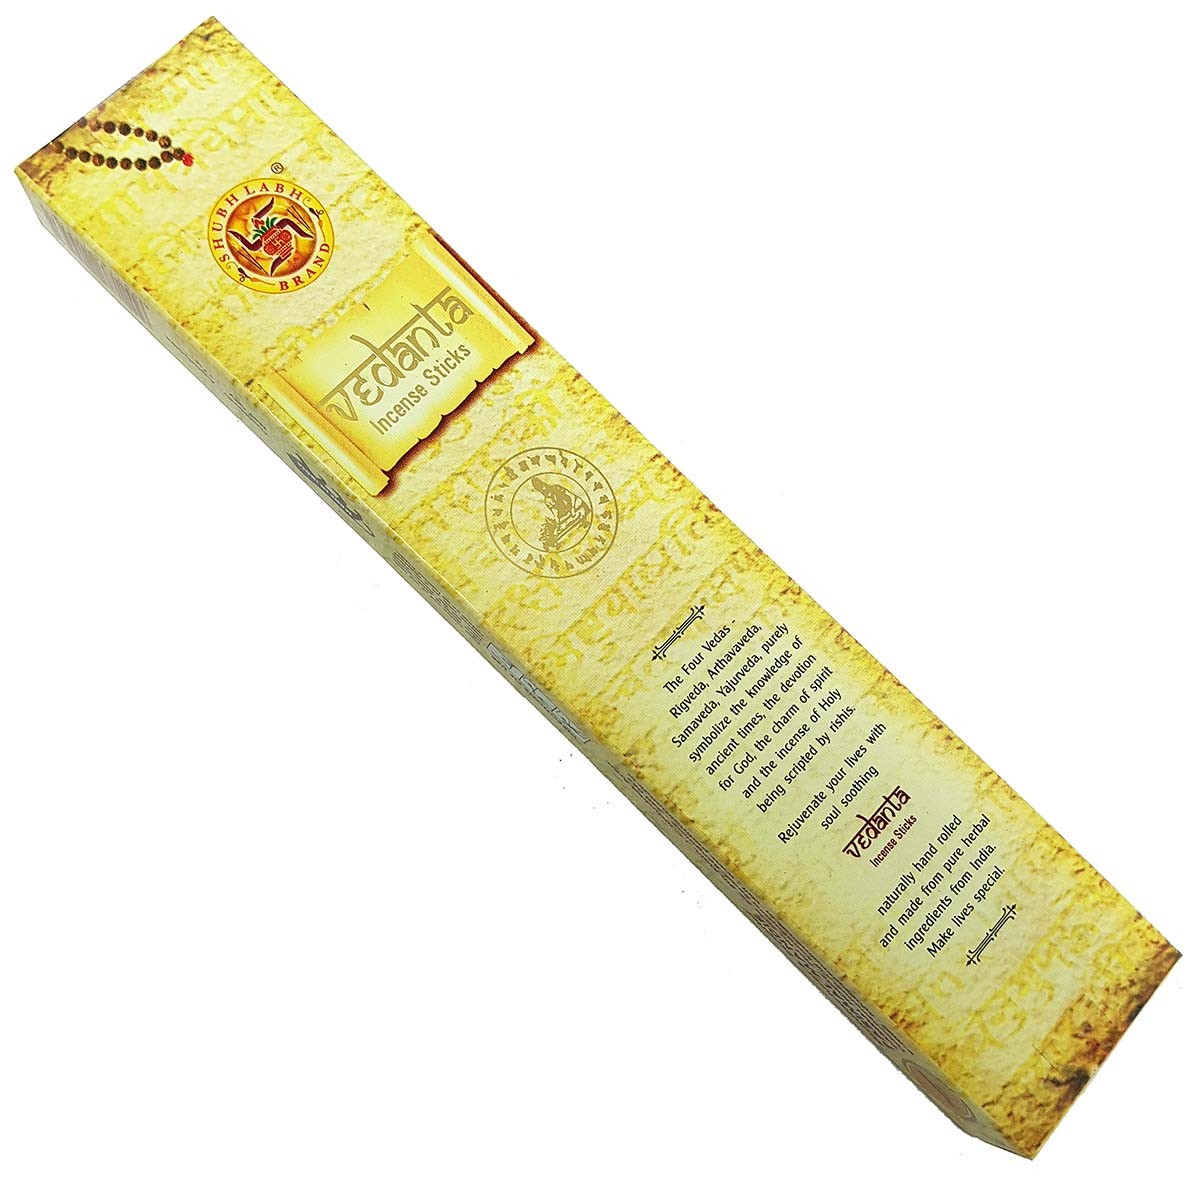 Parimal VEDANTA Natural Incense 17g